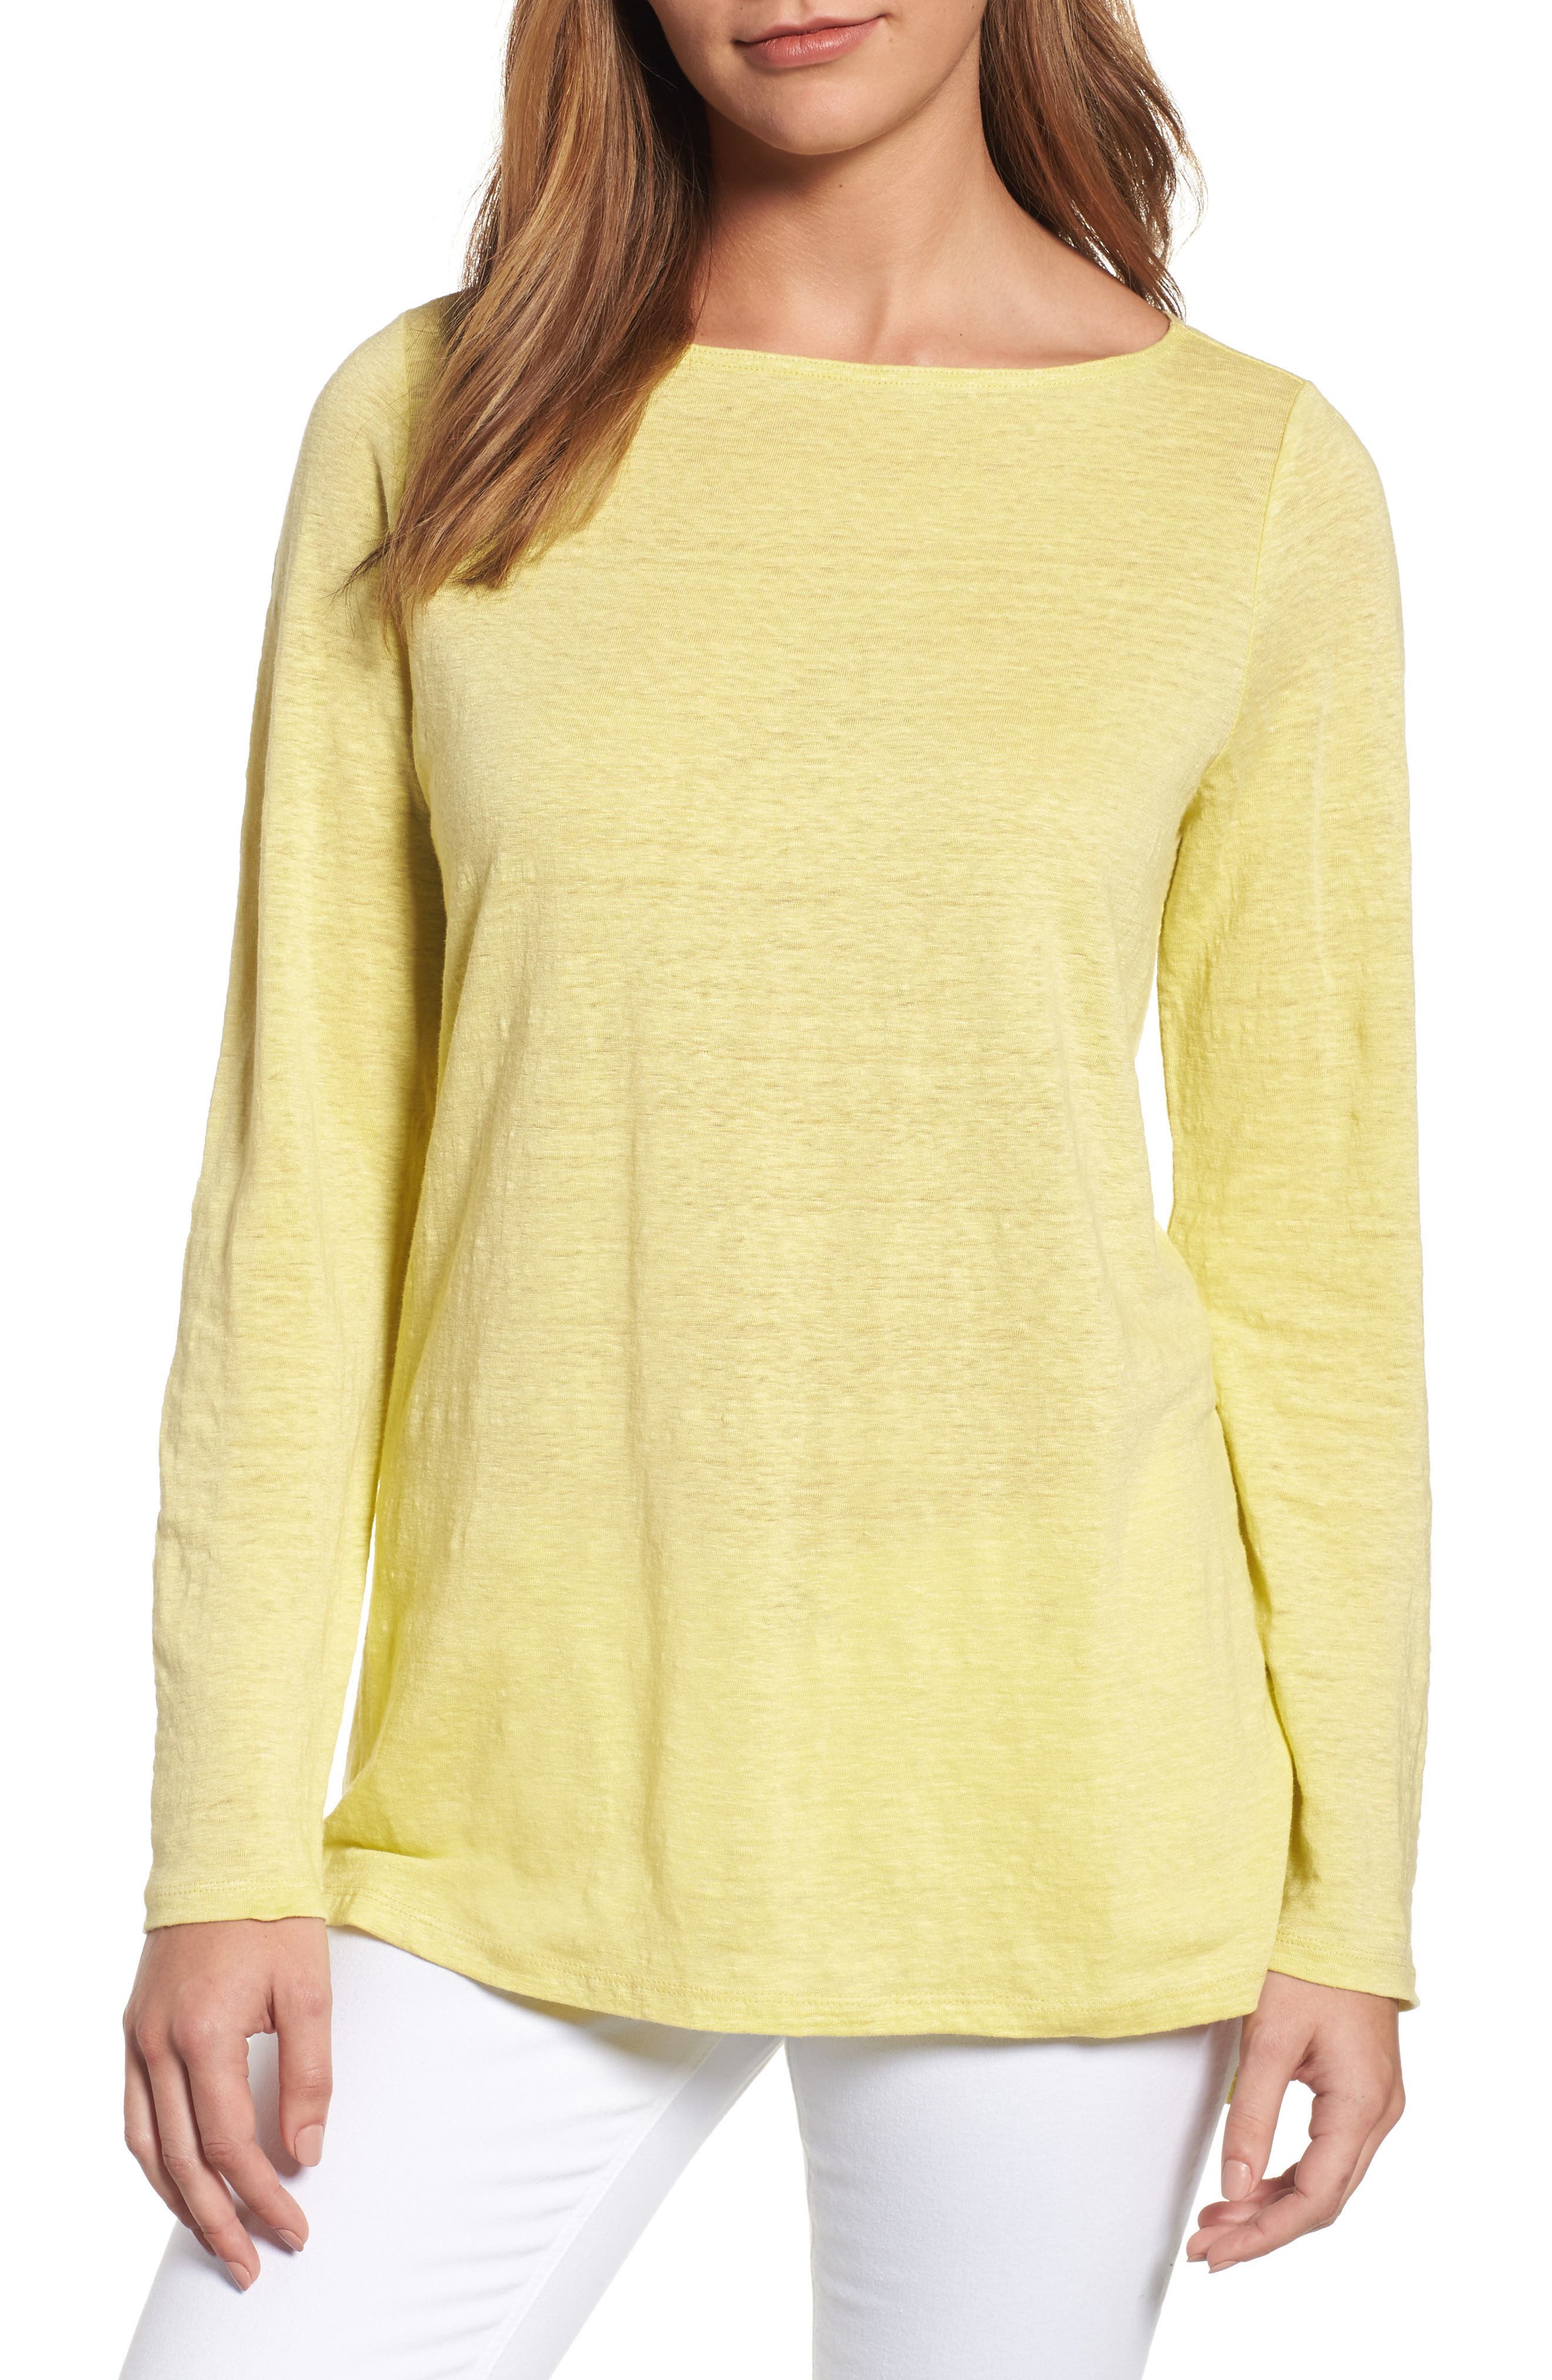 Eileen Fisher Organic Linen Bateau Neck Sweater